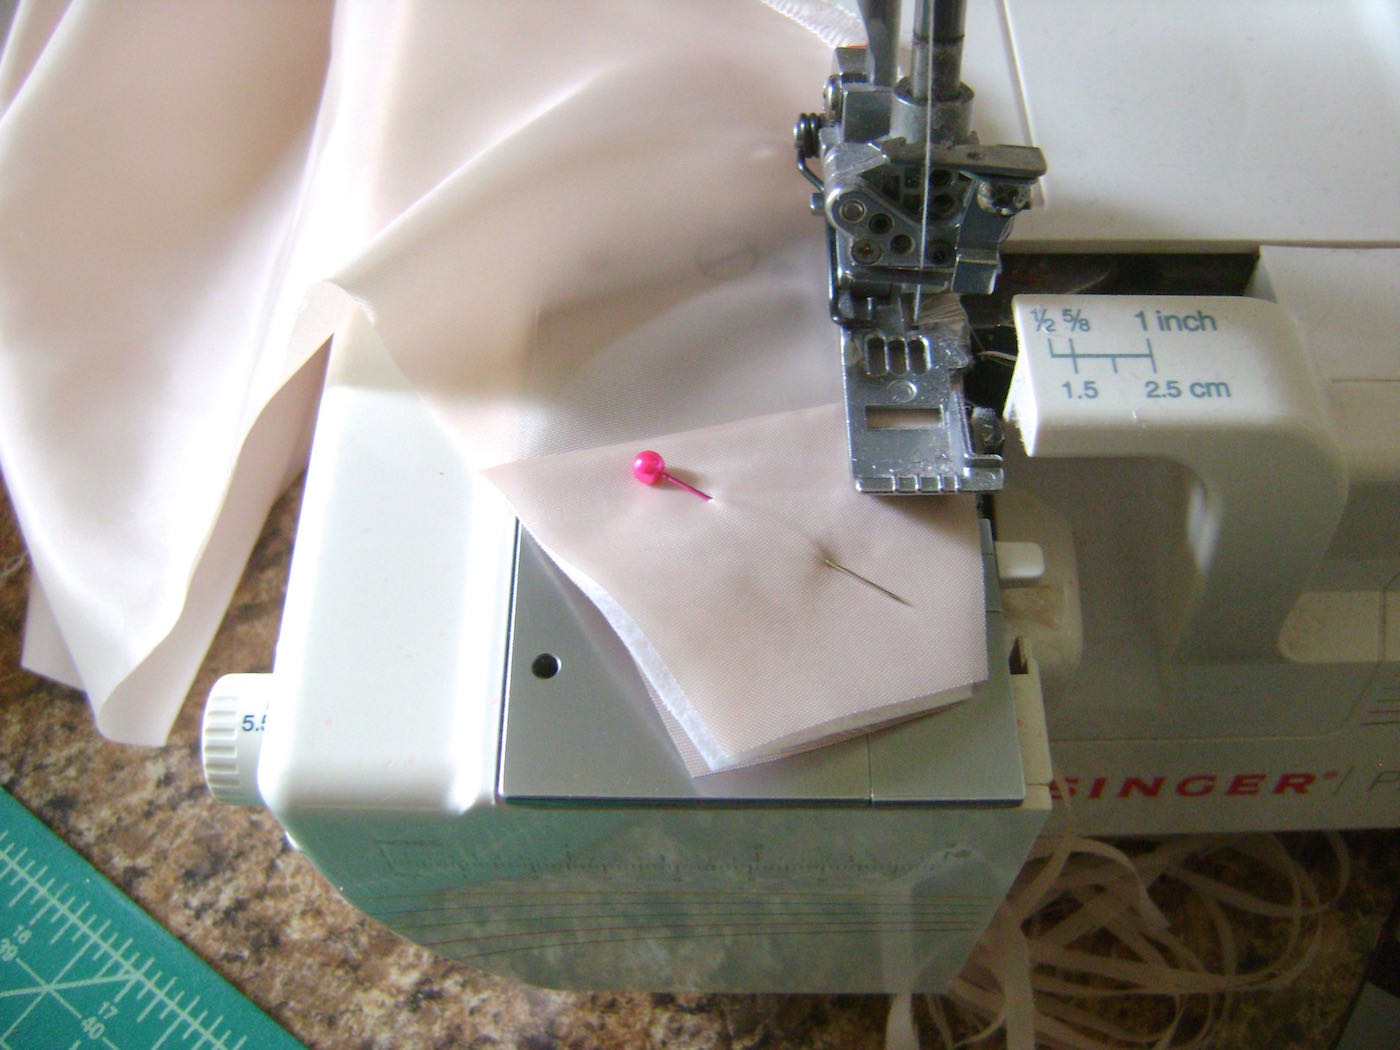 step 4 - Pin facings to the right side of the fabric. With a close stitch, serge or zigzag from the top end all around the outer edge until you reach where you started, catching the facings in the stitching. Do the same with the second fabric panel.